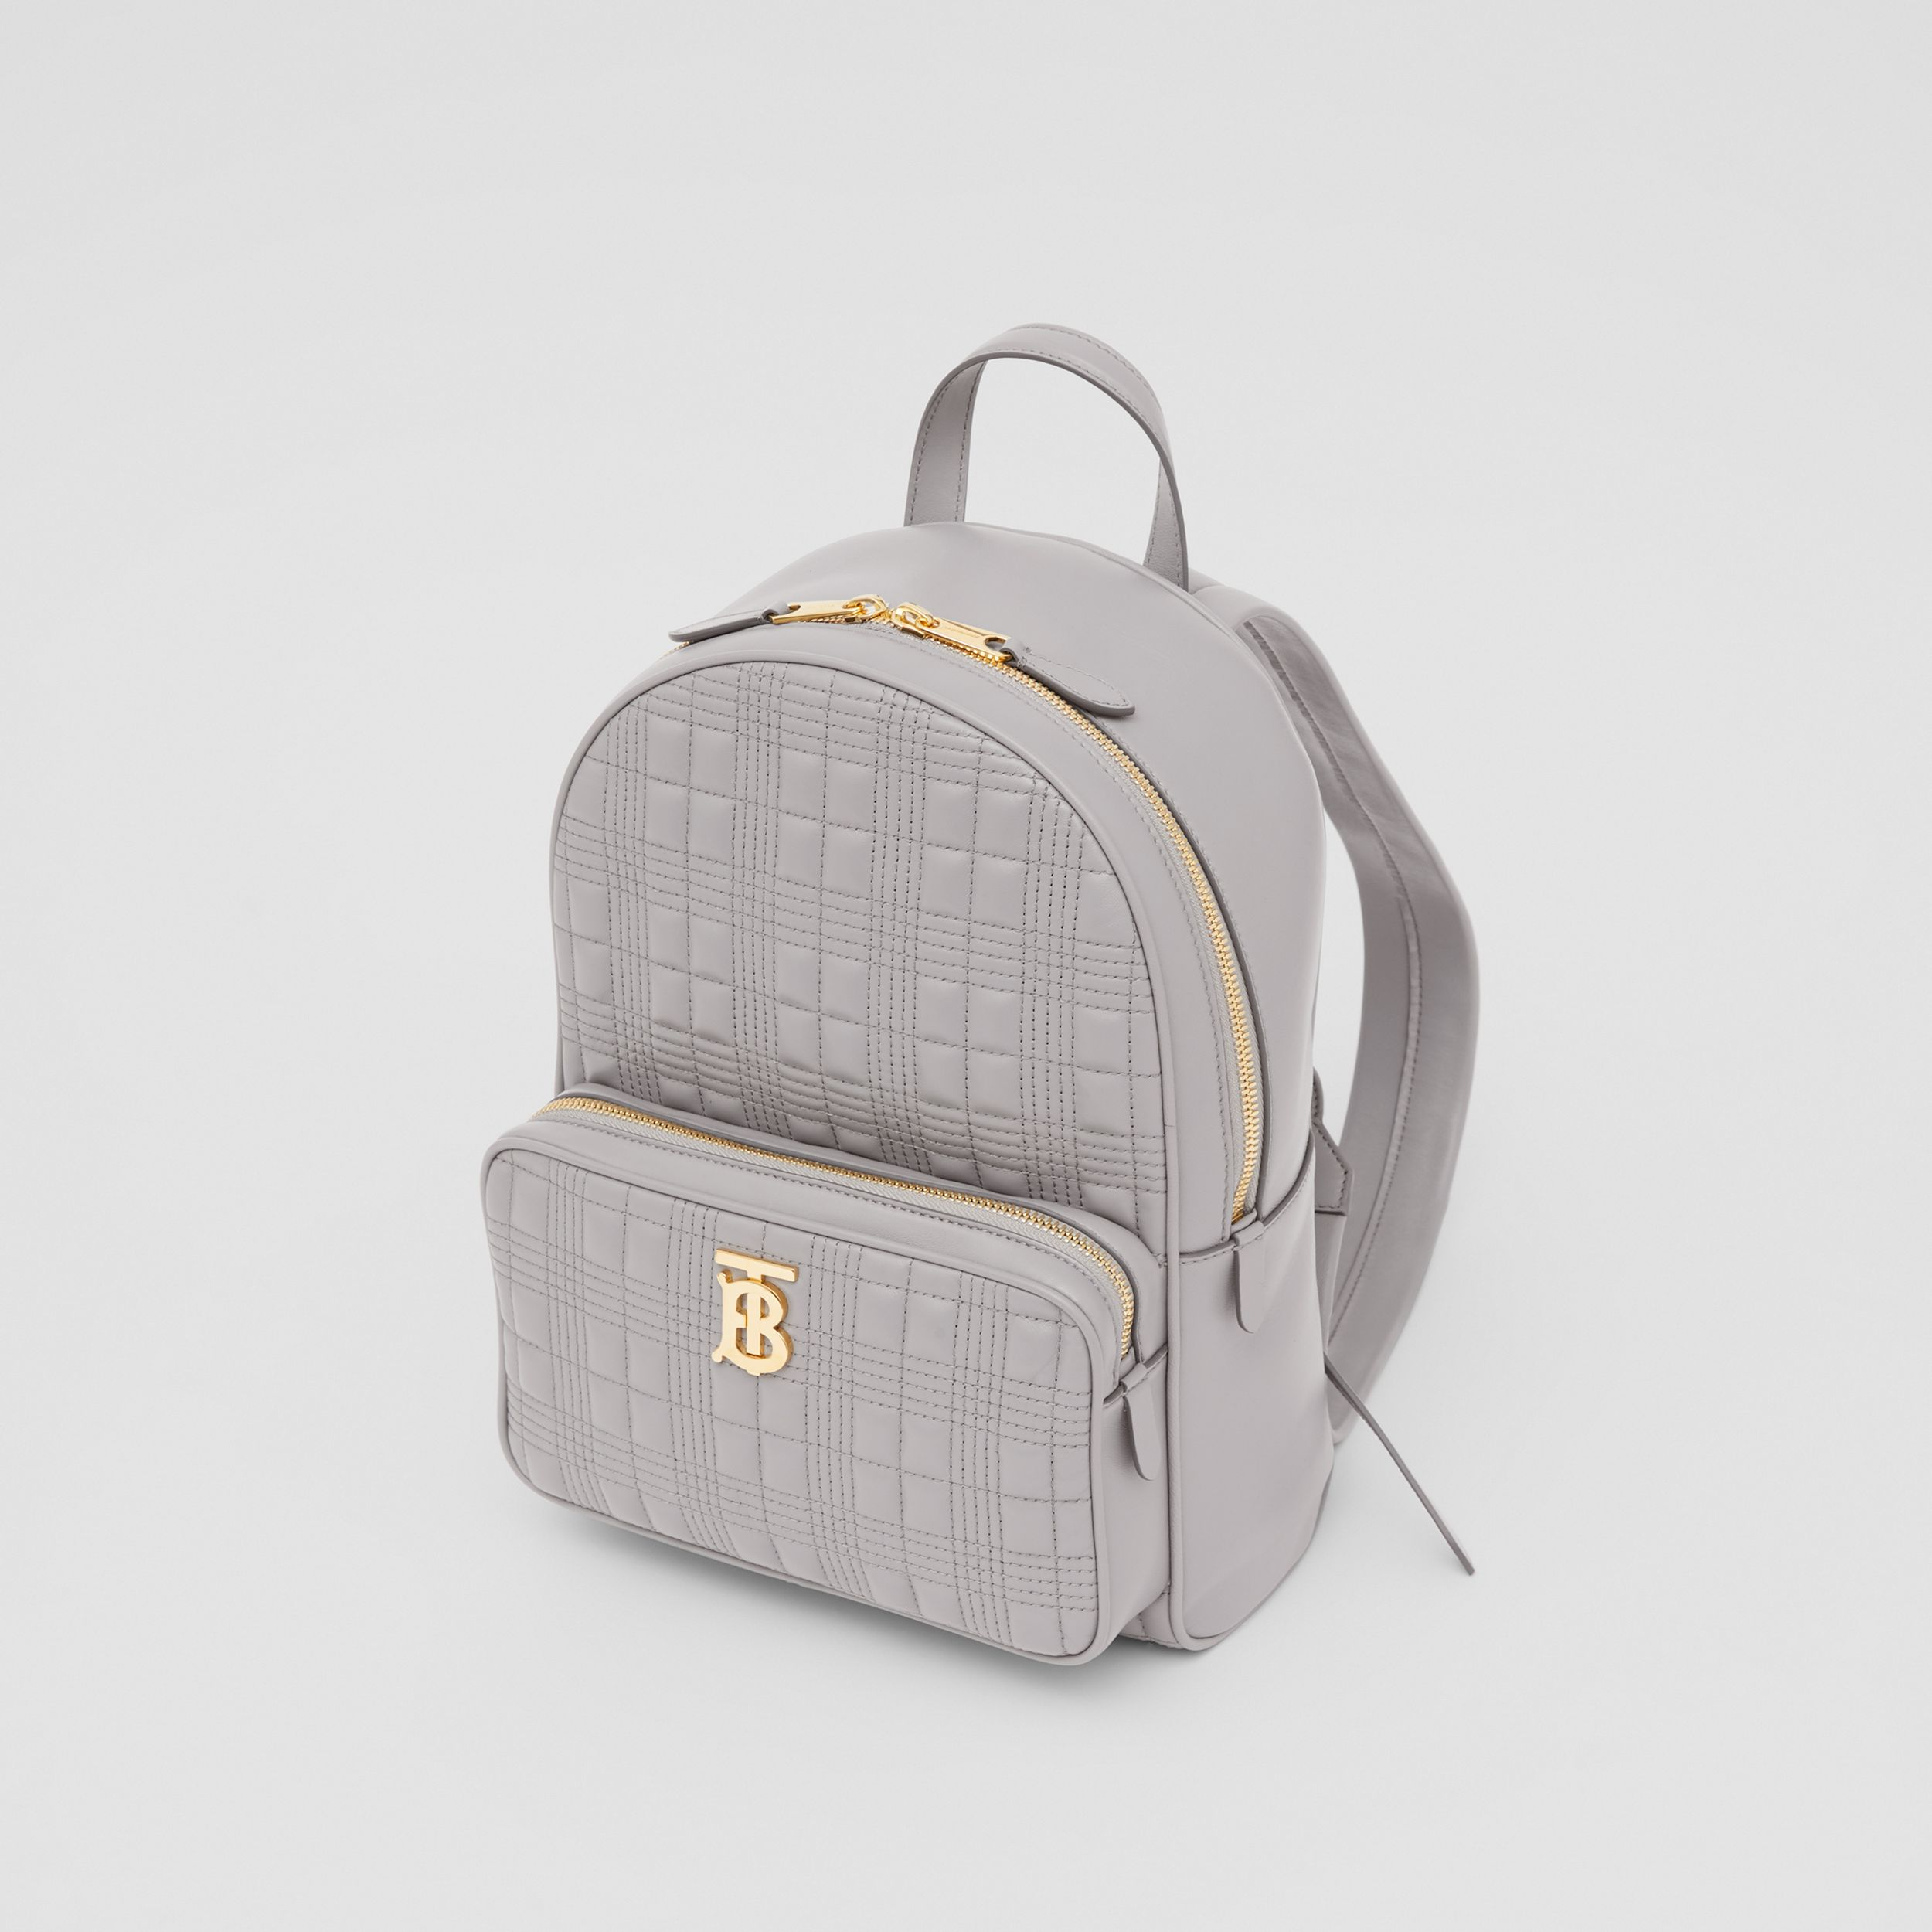 Quilted Lambskin Backpack in Cloud Grey - Women | Burberry - 4